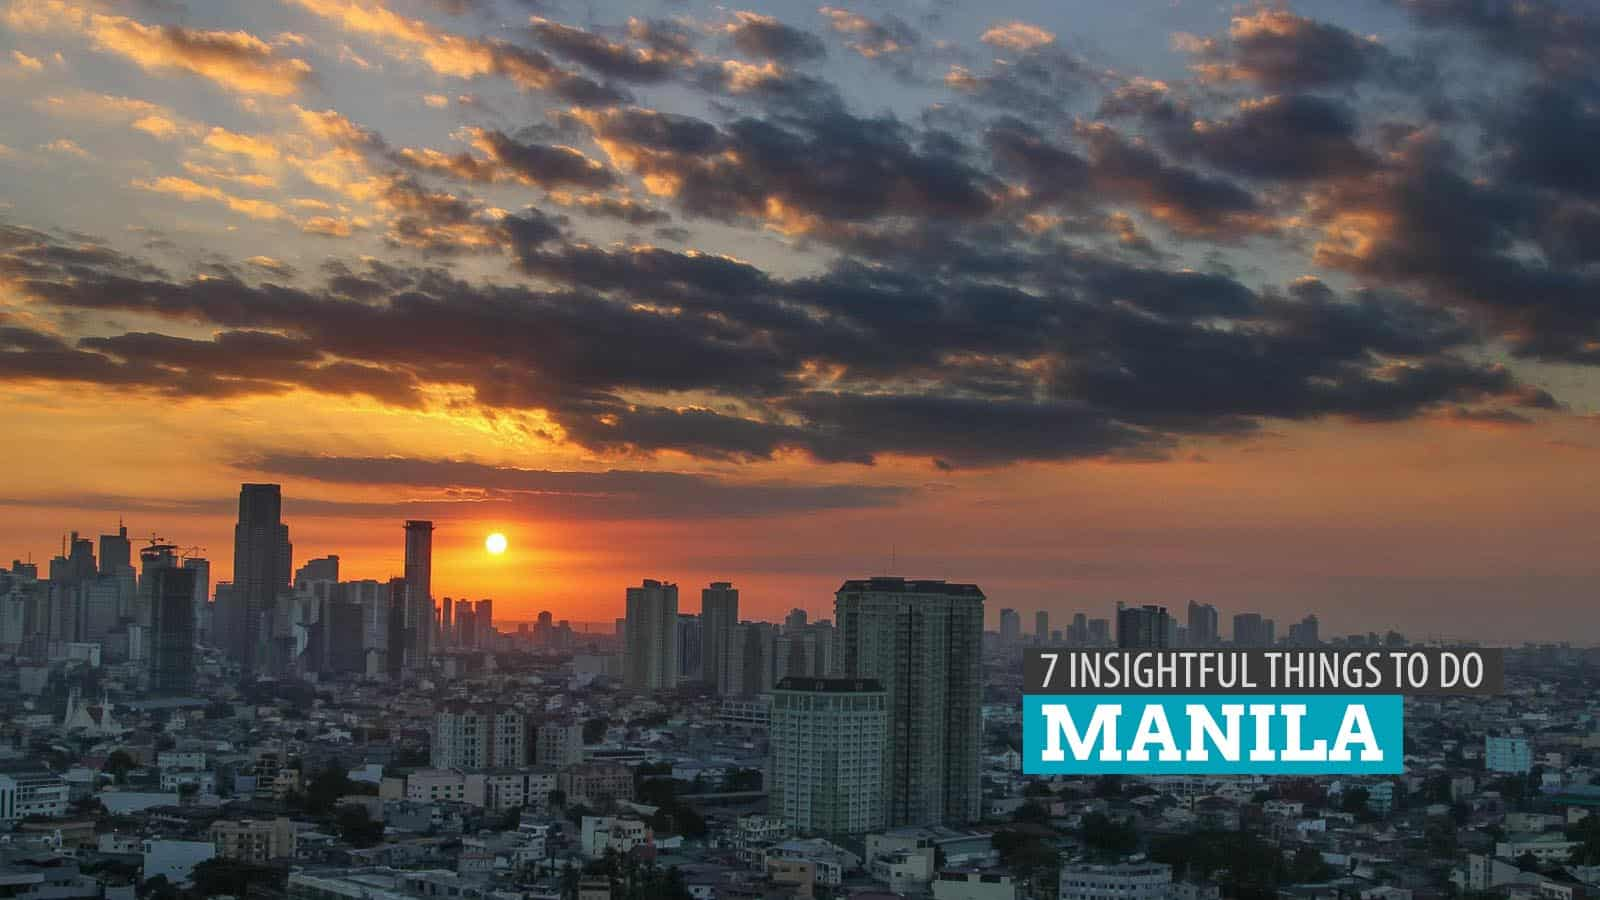 7 Insightful Things to Do in Metro Manila, Philippines